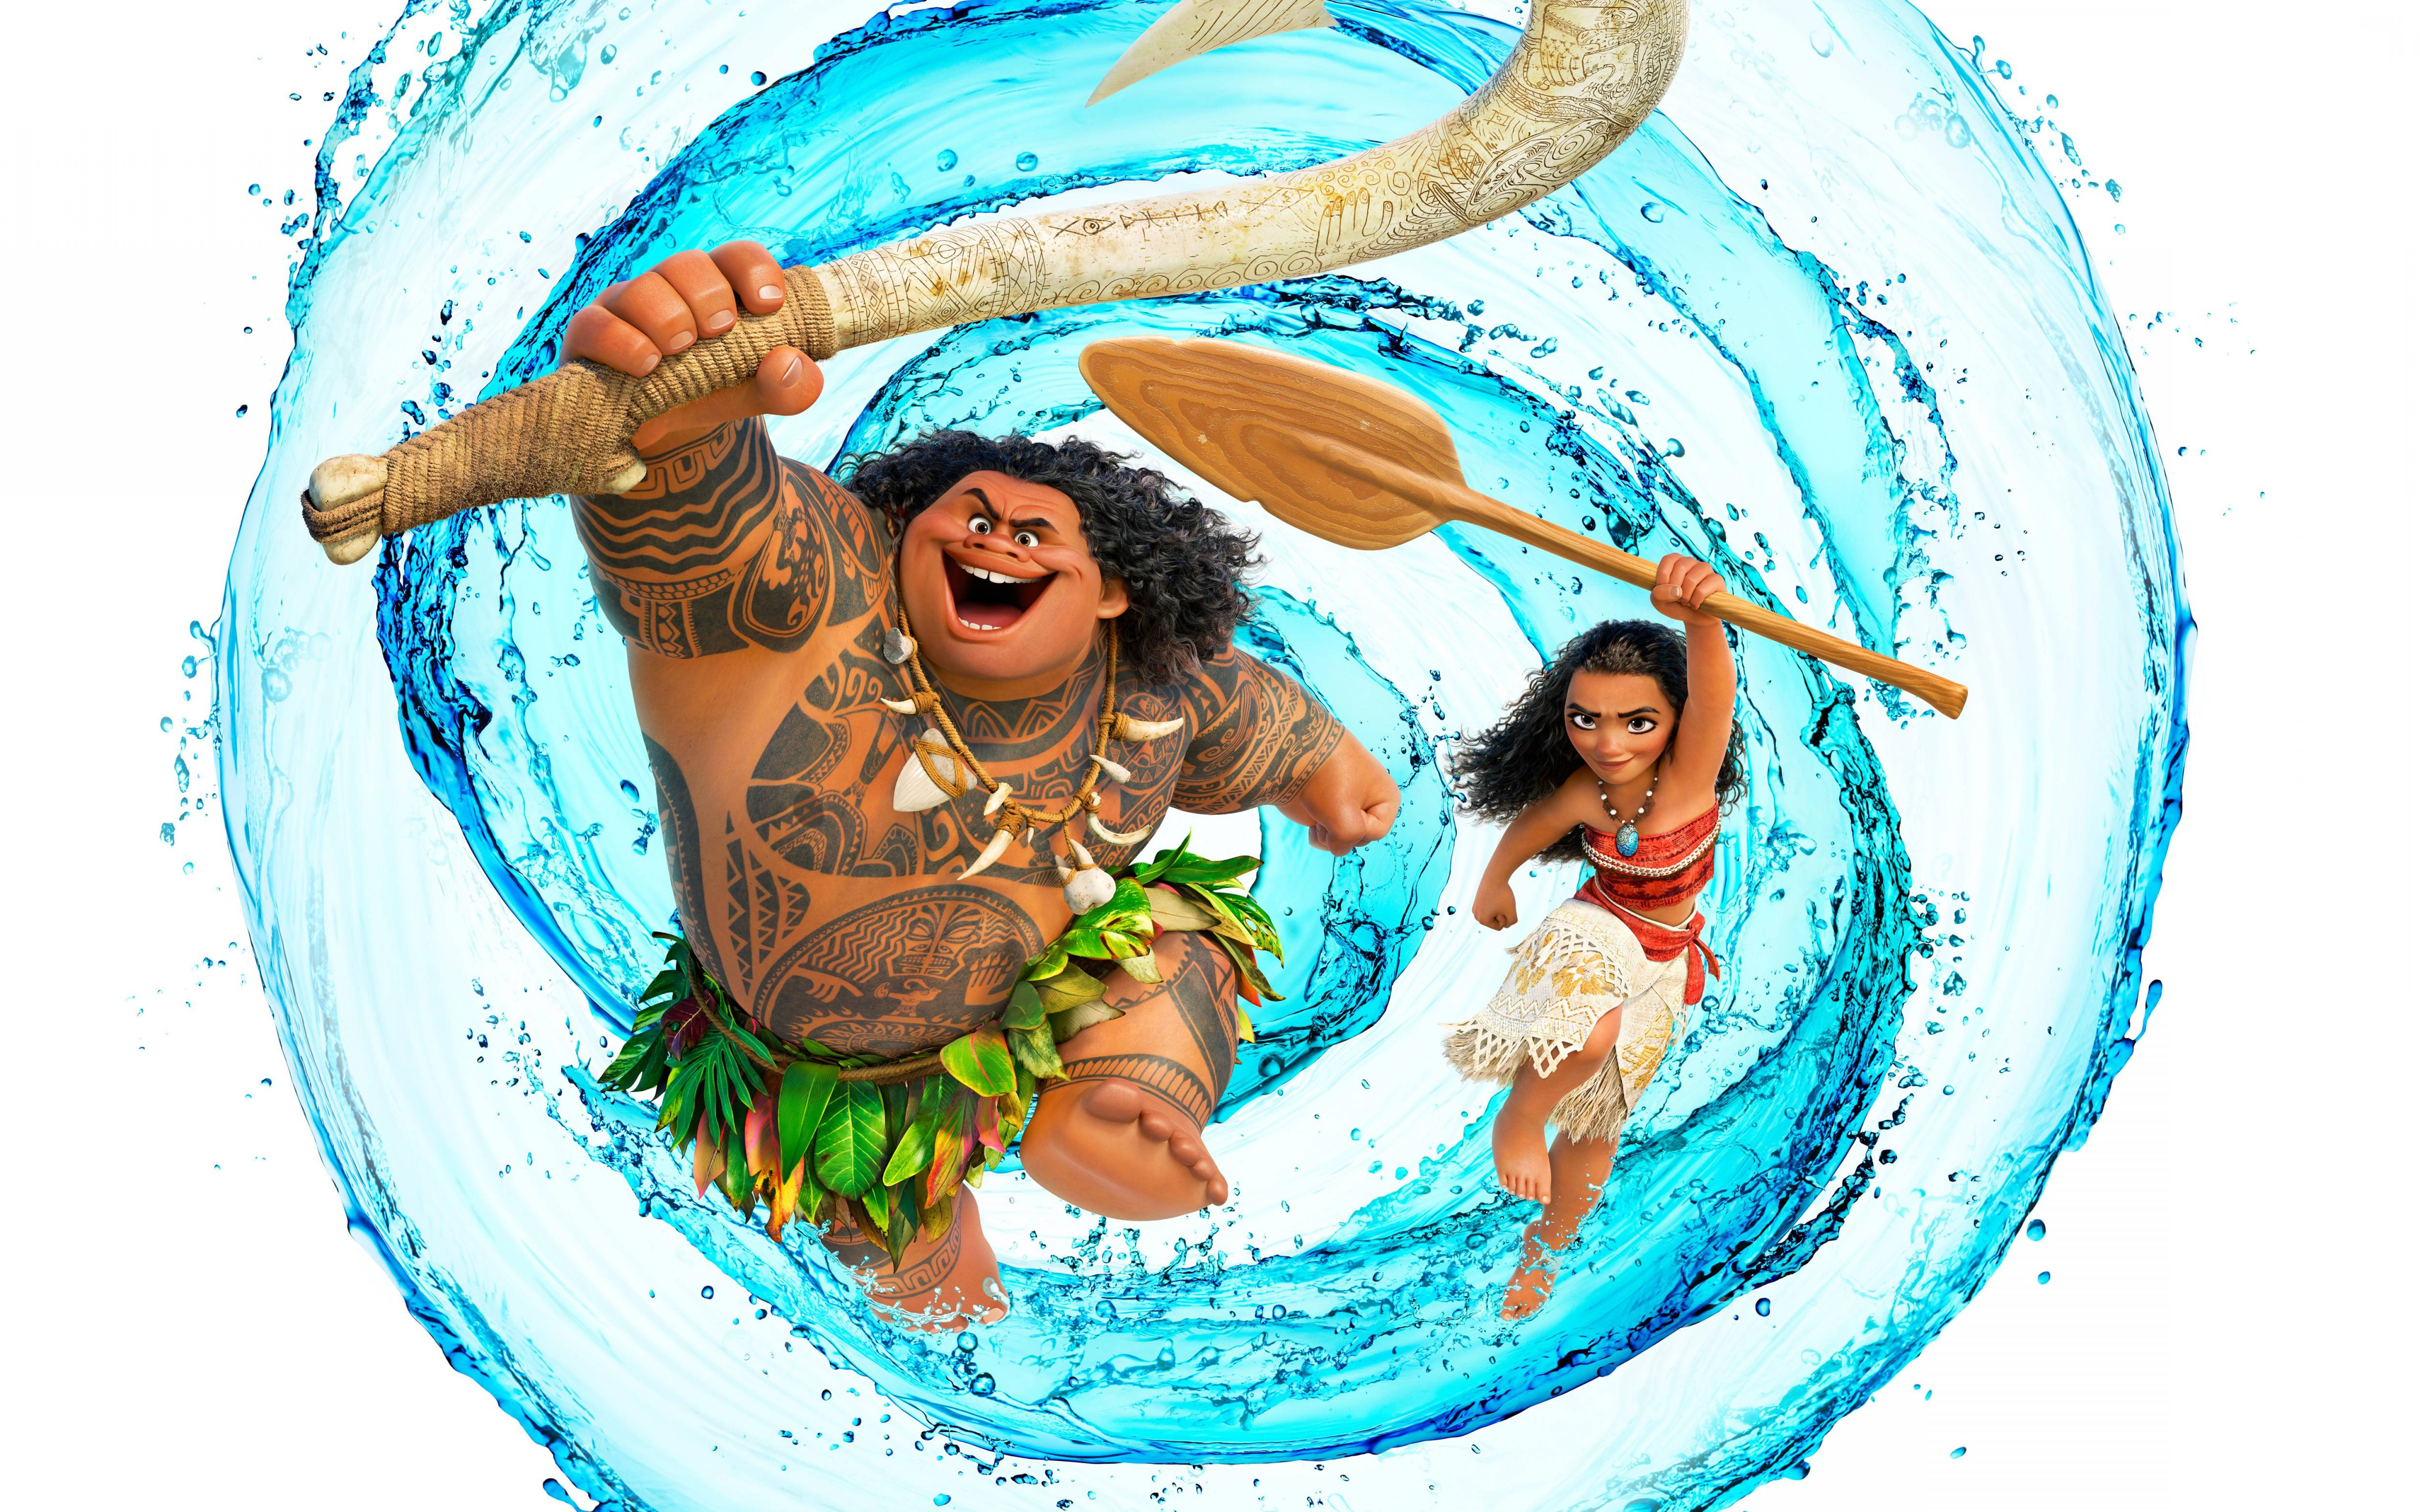 Maui Moana Wallpaper Posted By John Walker